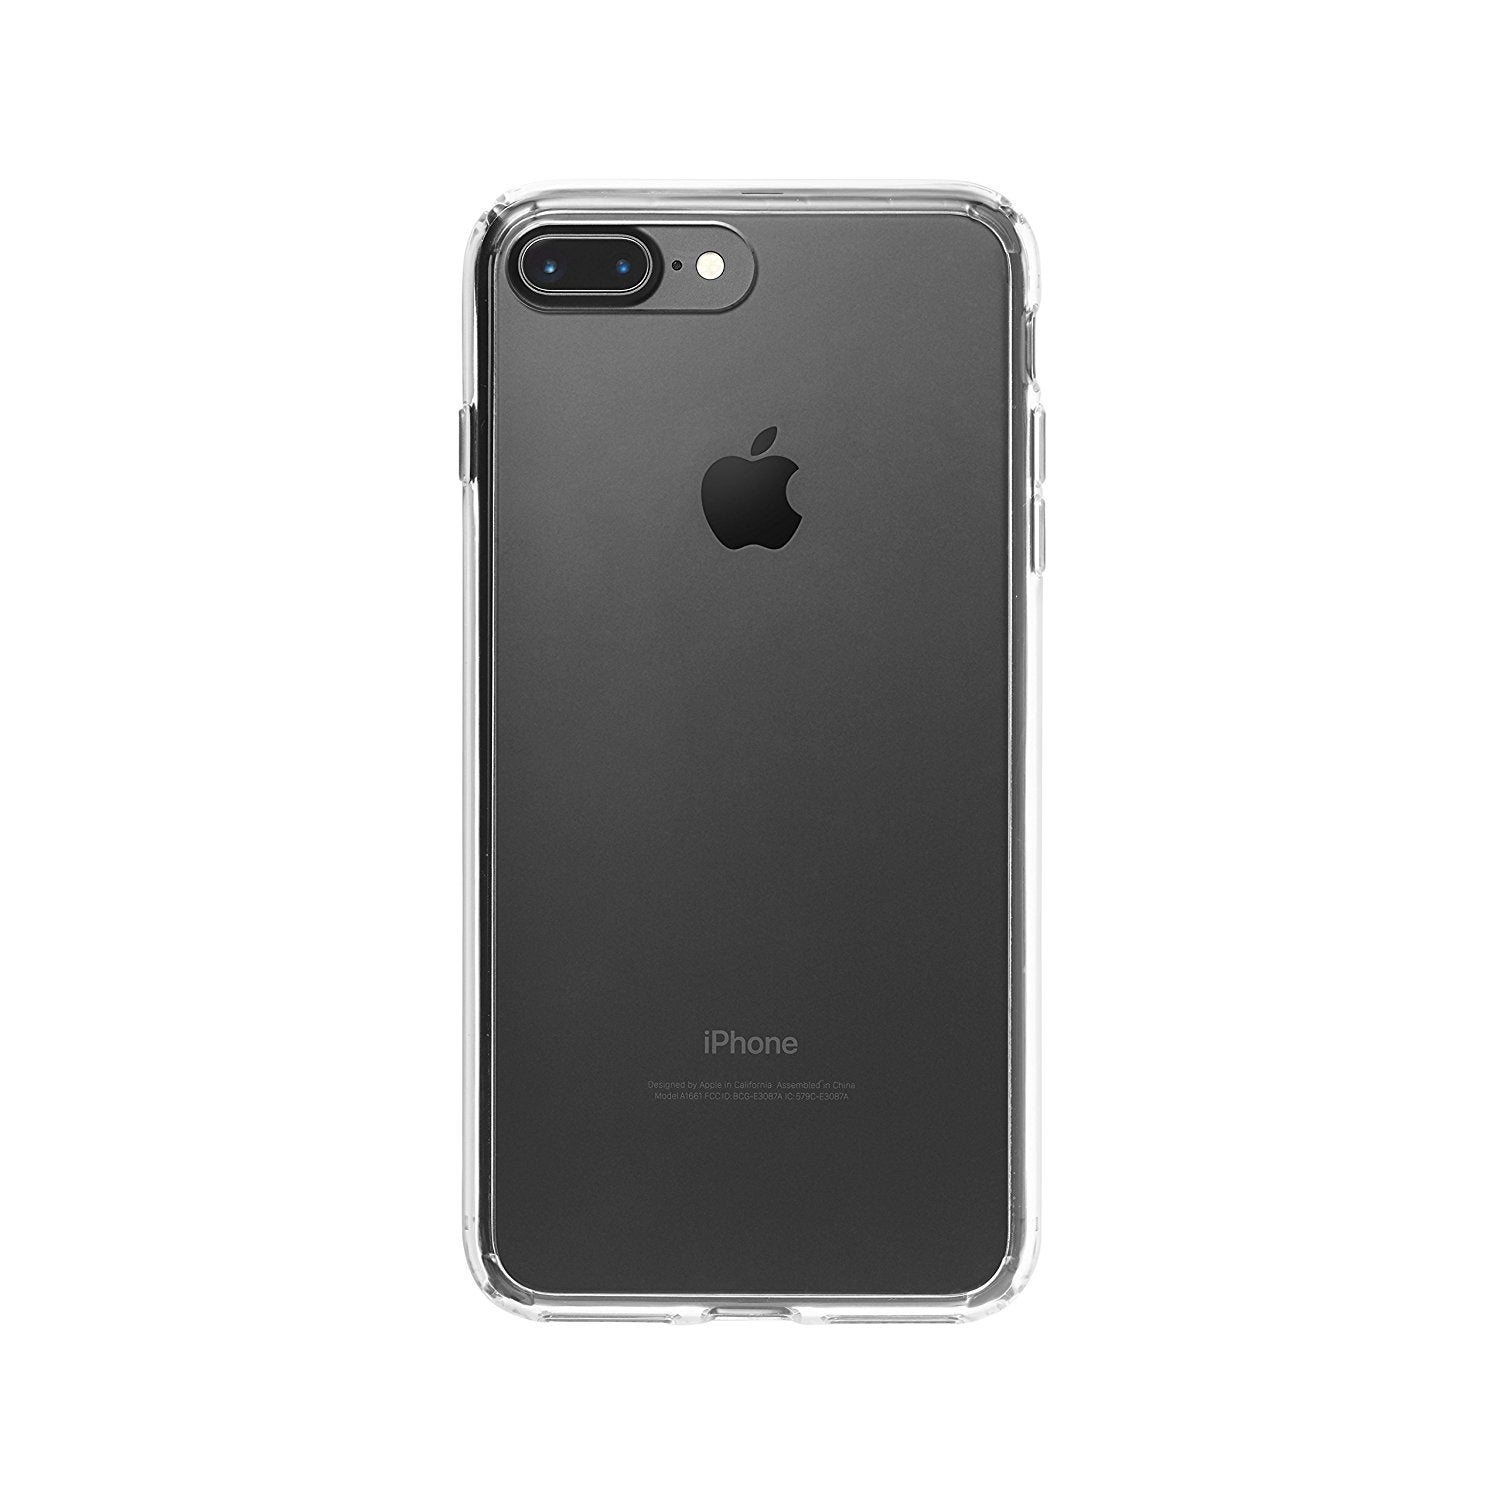 Apple iPhone 7 Plus AT&T - Refurbished by Overstock 256 GB - White and Silver - AT&T